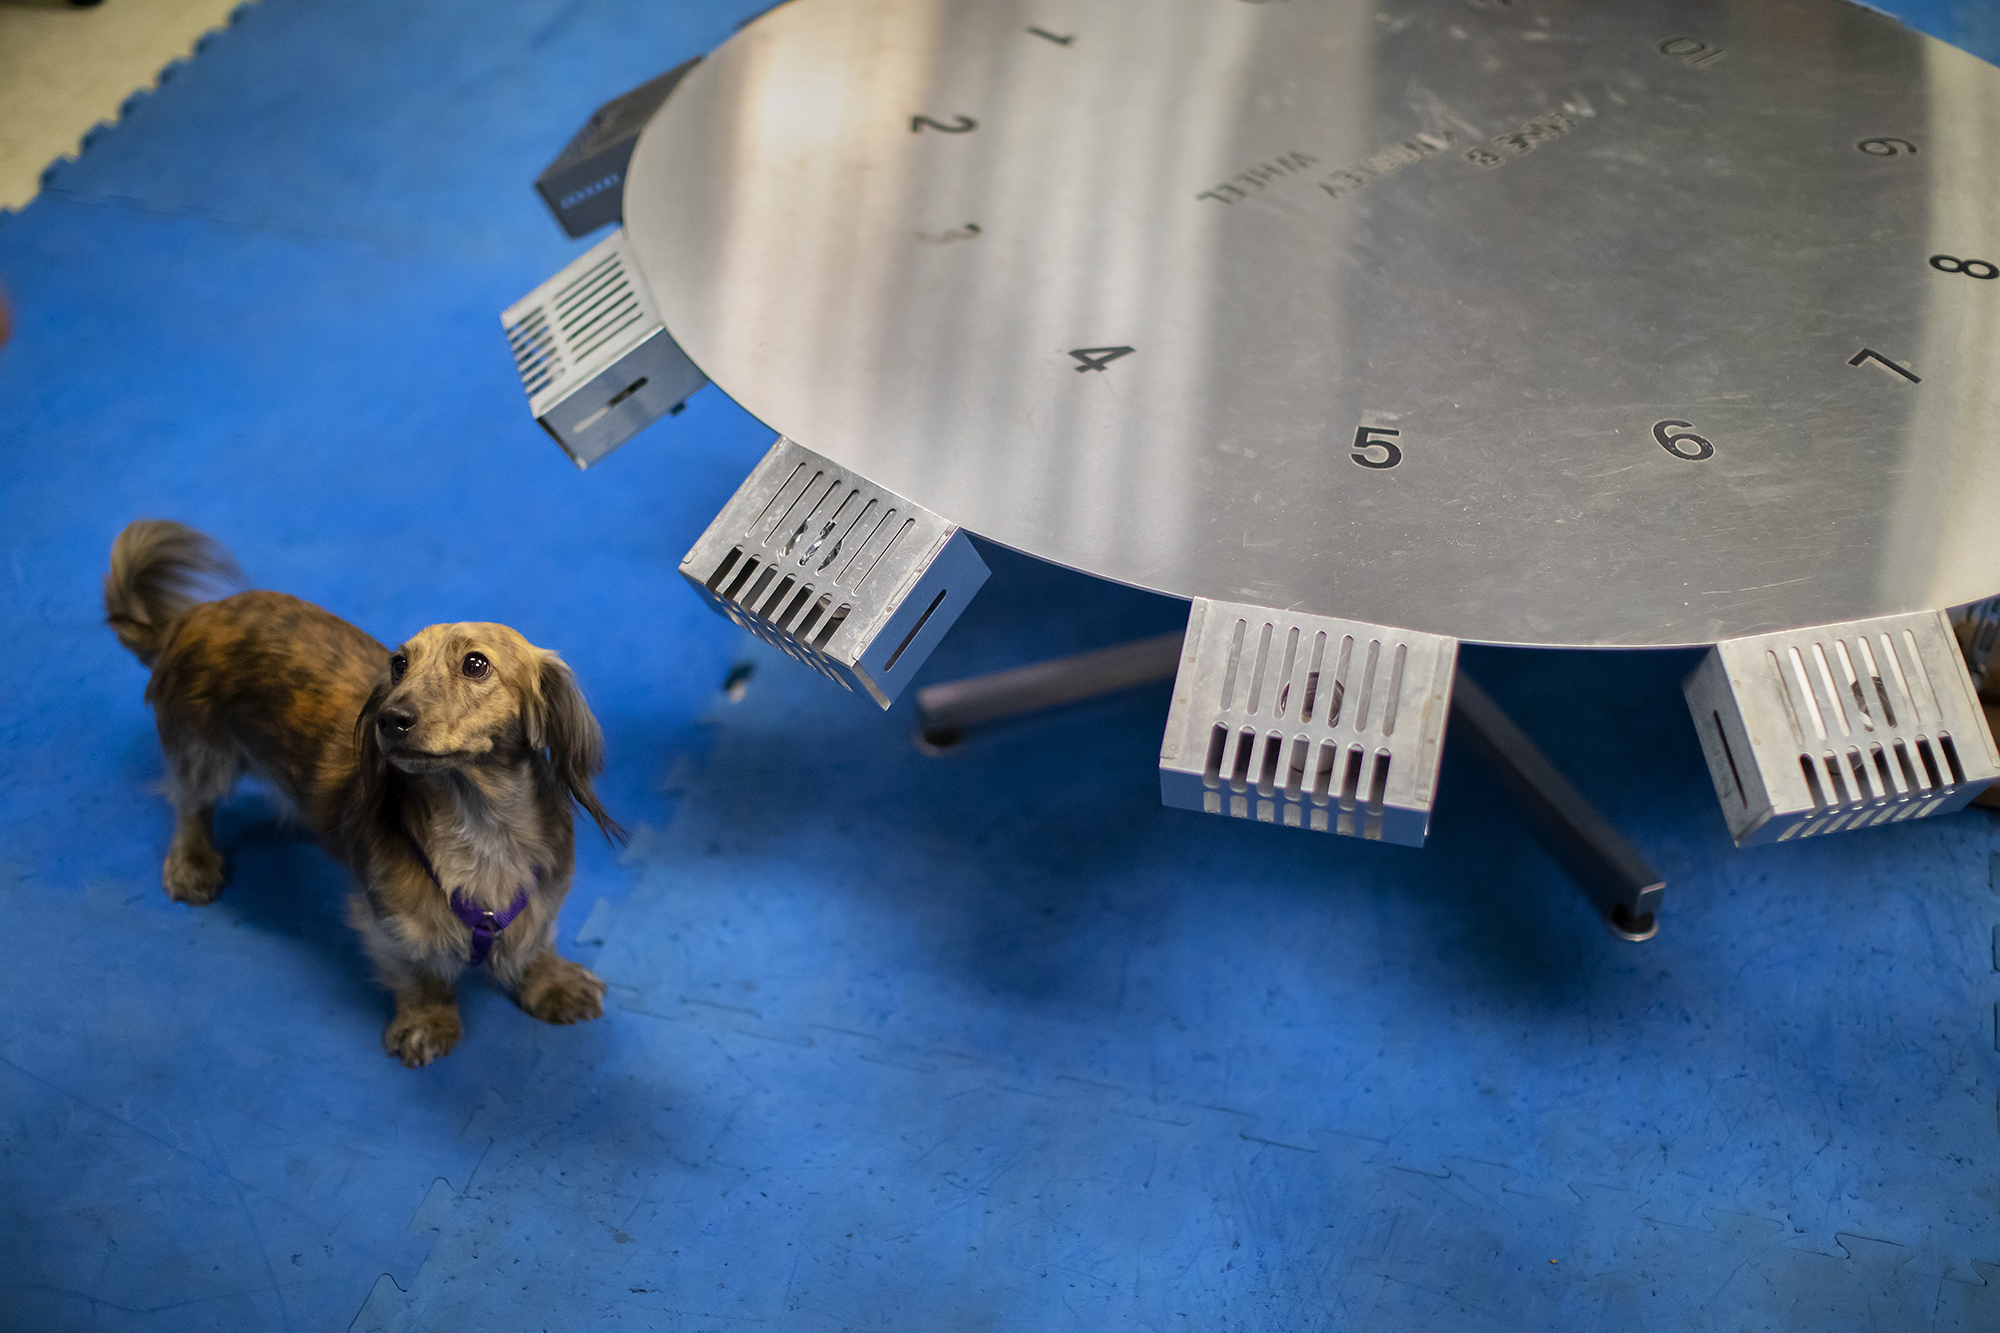 Boltz, a dachsund, looks up from a metal scent wheel